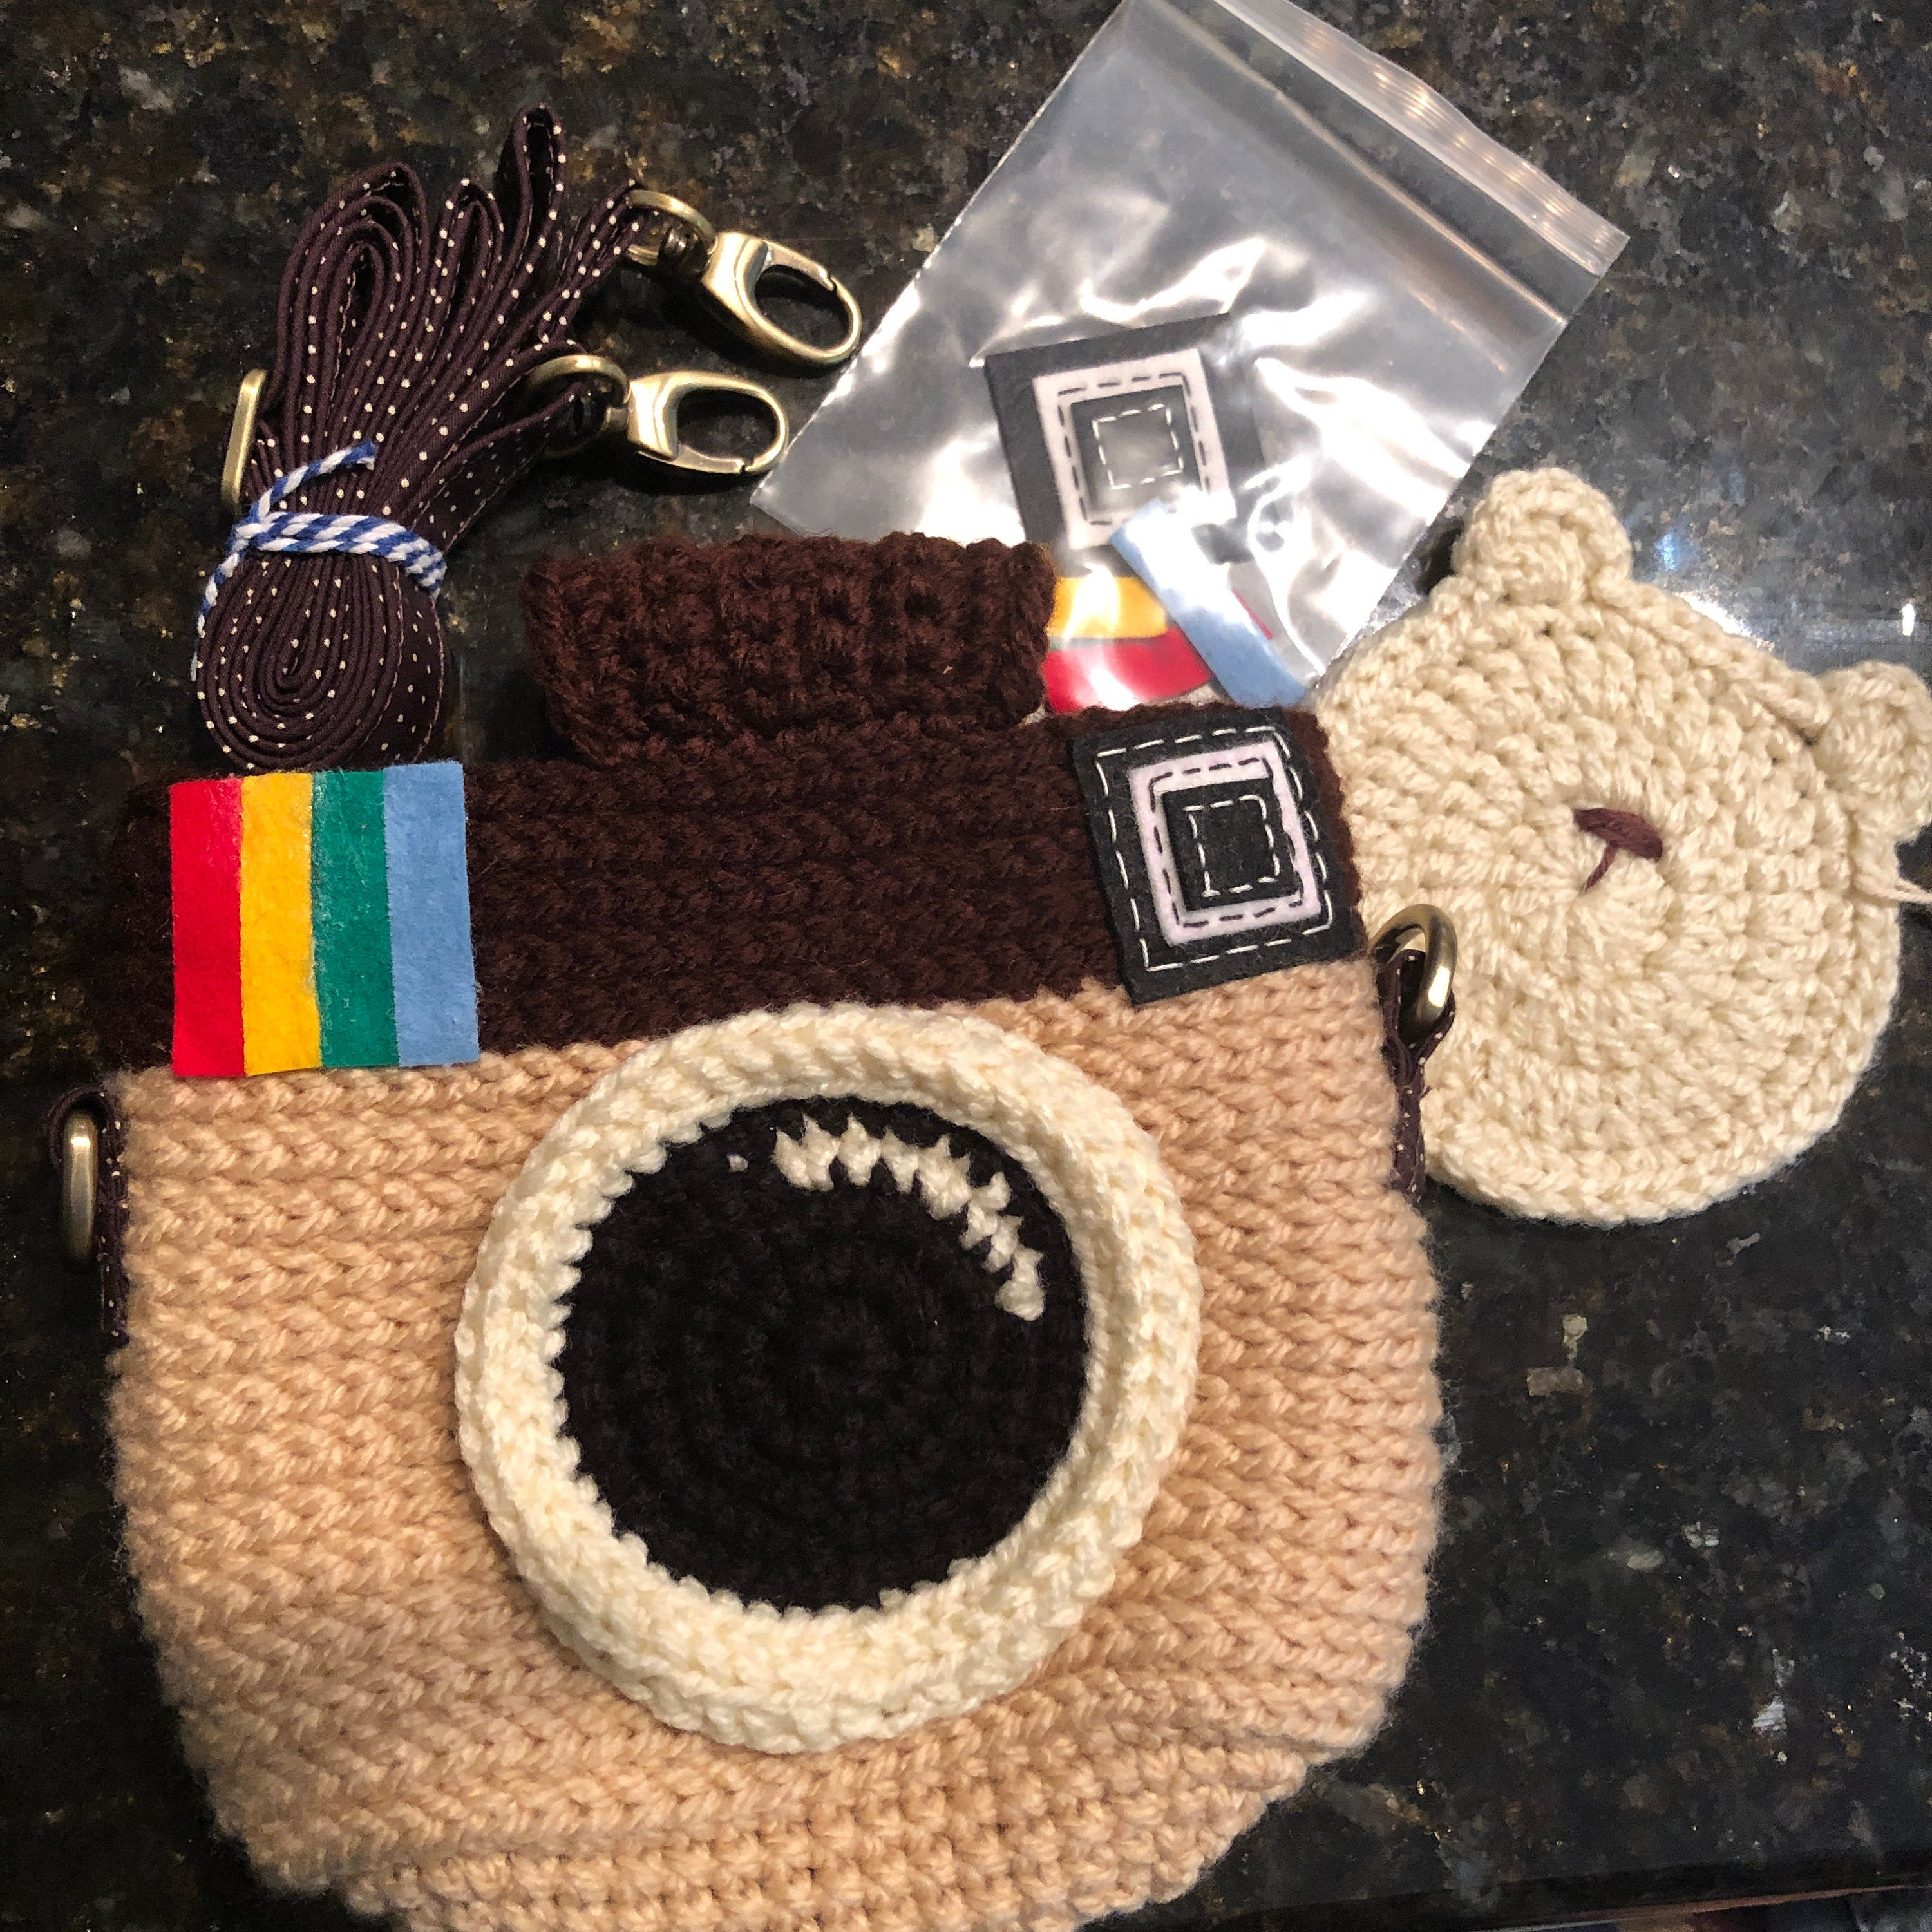 Wendi K Born added a photo of their purchase